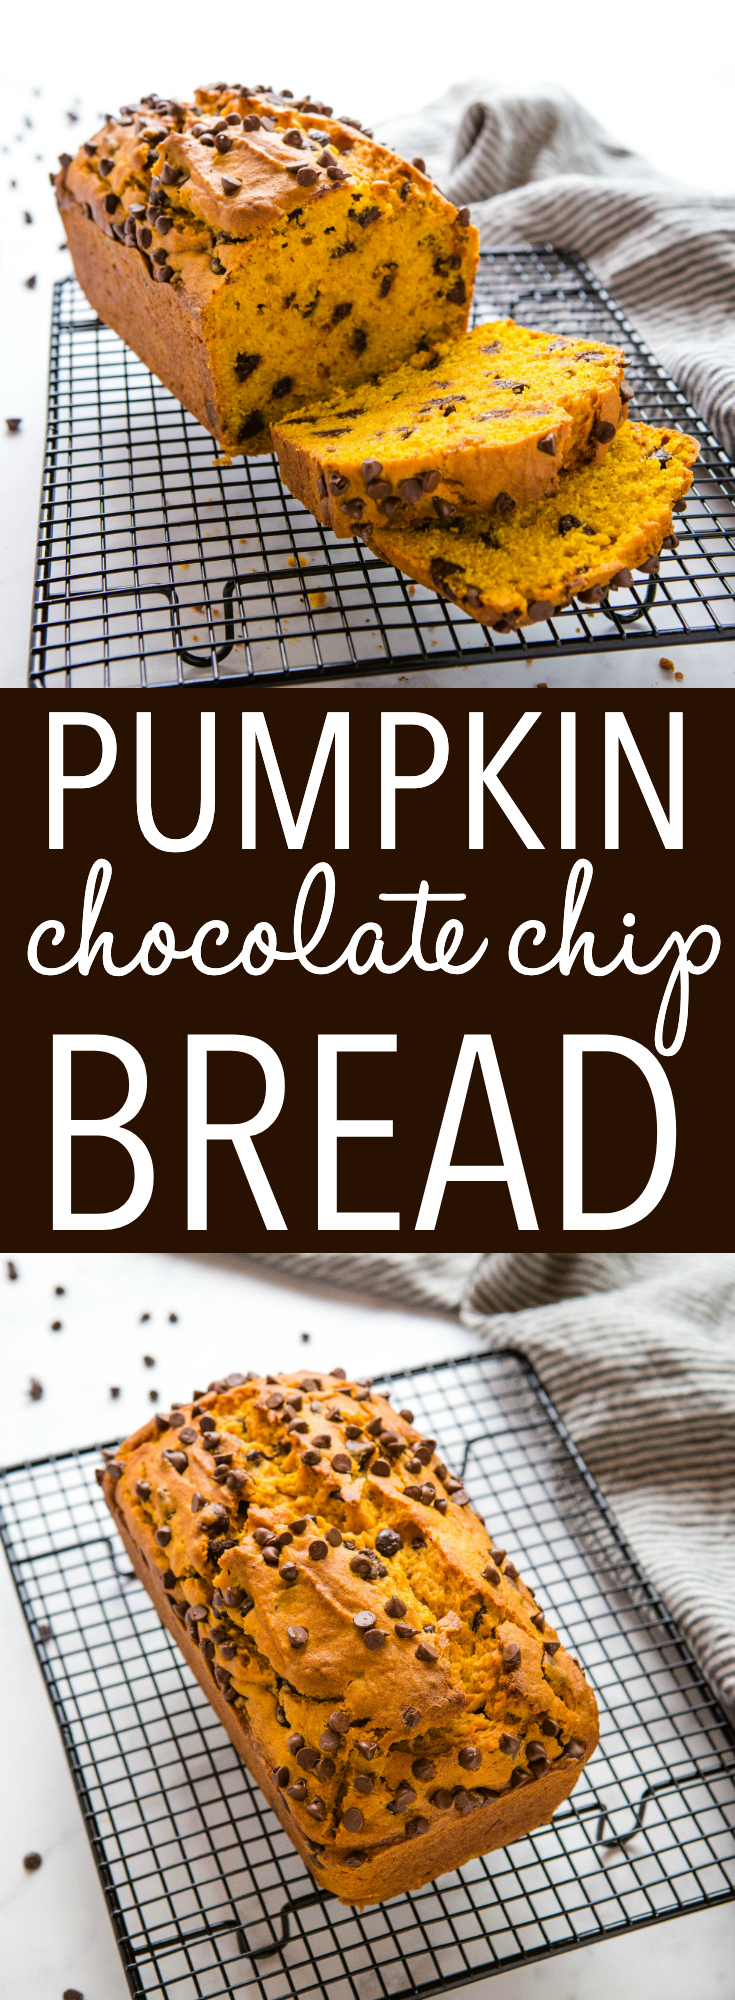 This Best Ever Chocolate Chip Pumpkin Bread is the perfect sweet snack for fall! Light, fluffy and full of real pumpkin and chocolate chips! Make it in one bowl! Recipe from thebusybaker.ca! #pumpkin #chocolatechip #bread #loaf #muffins #baking #sweet #dessert #fall via @busybakerblog